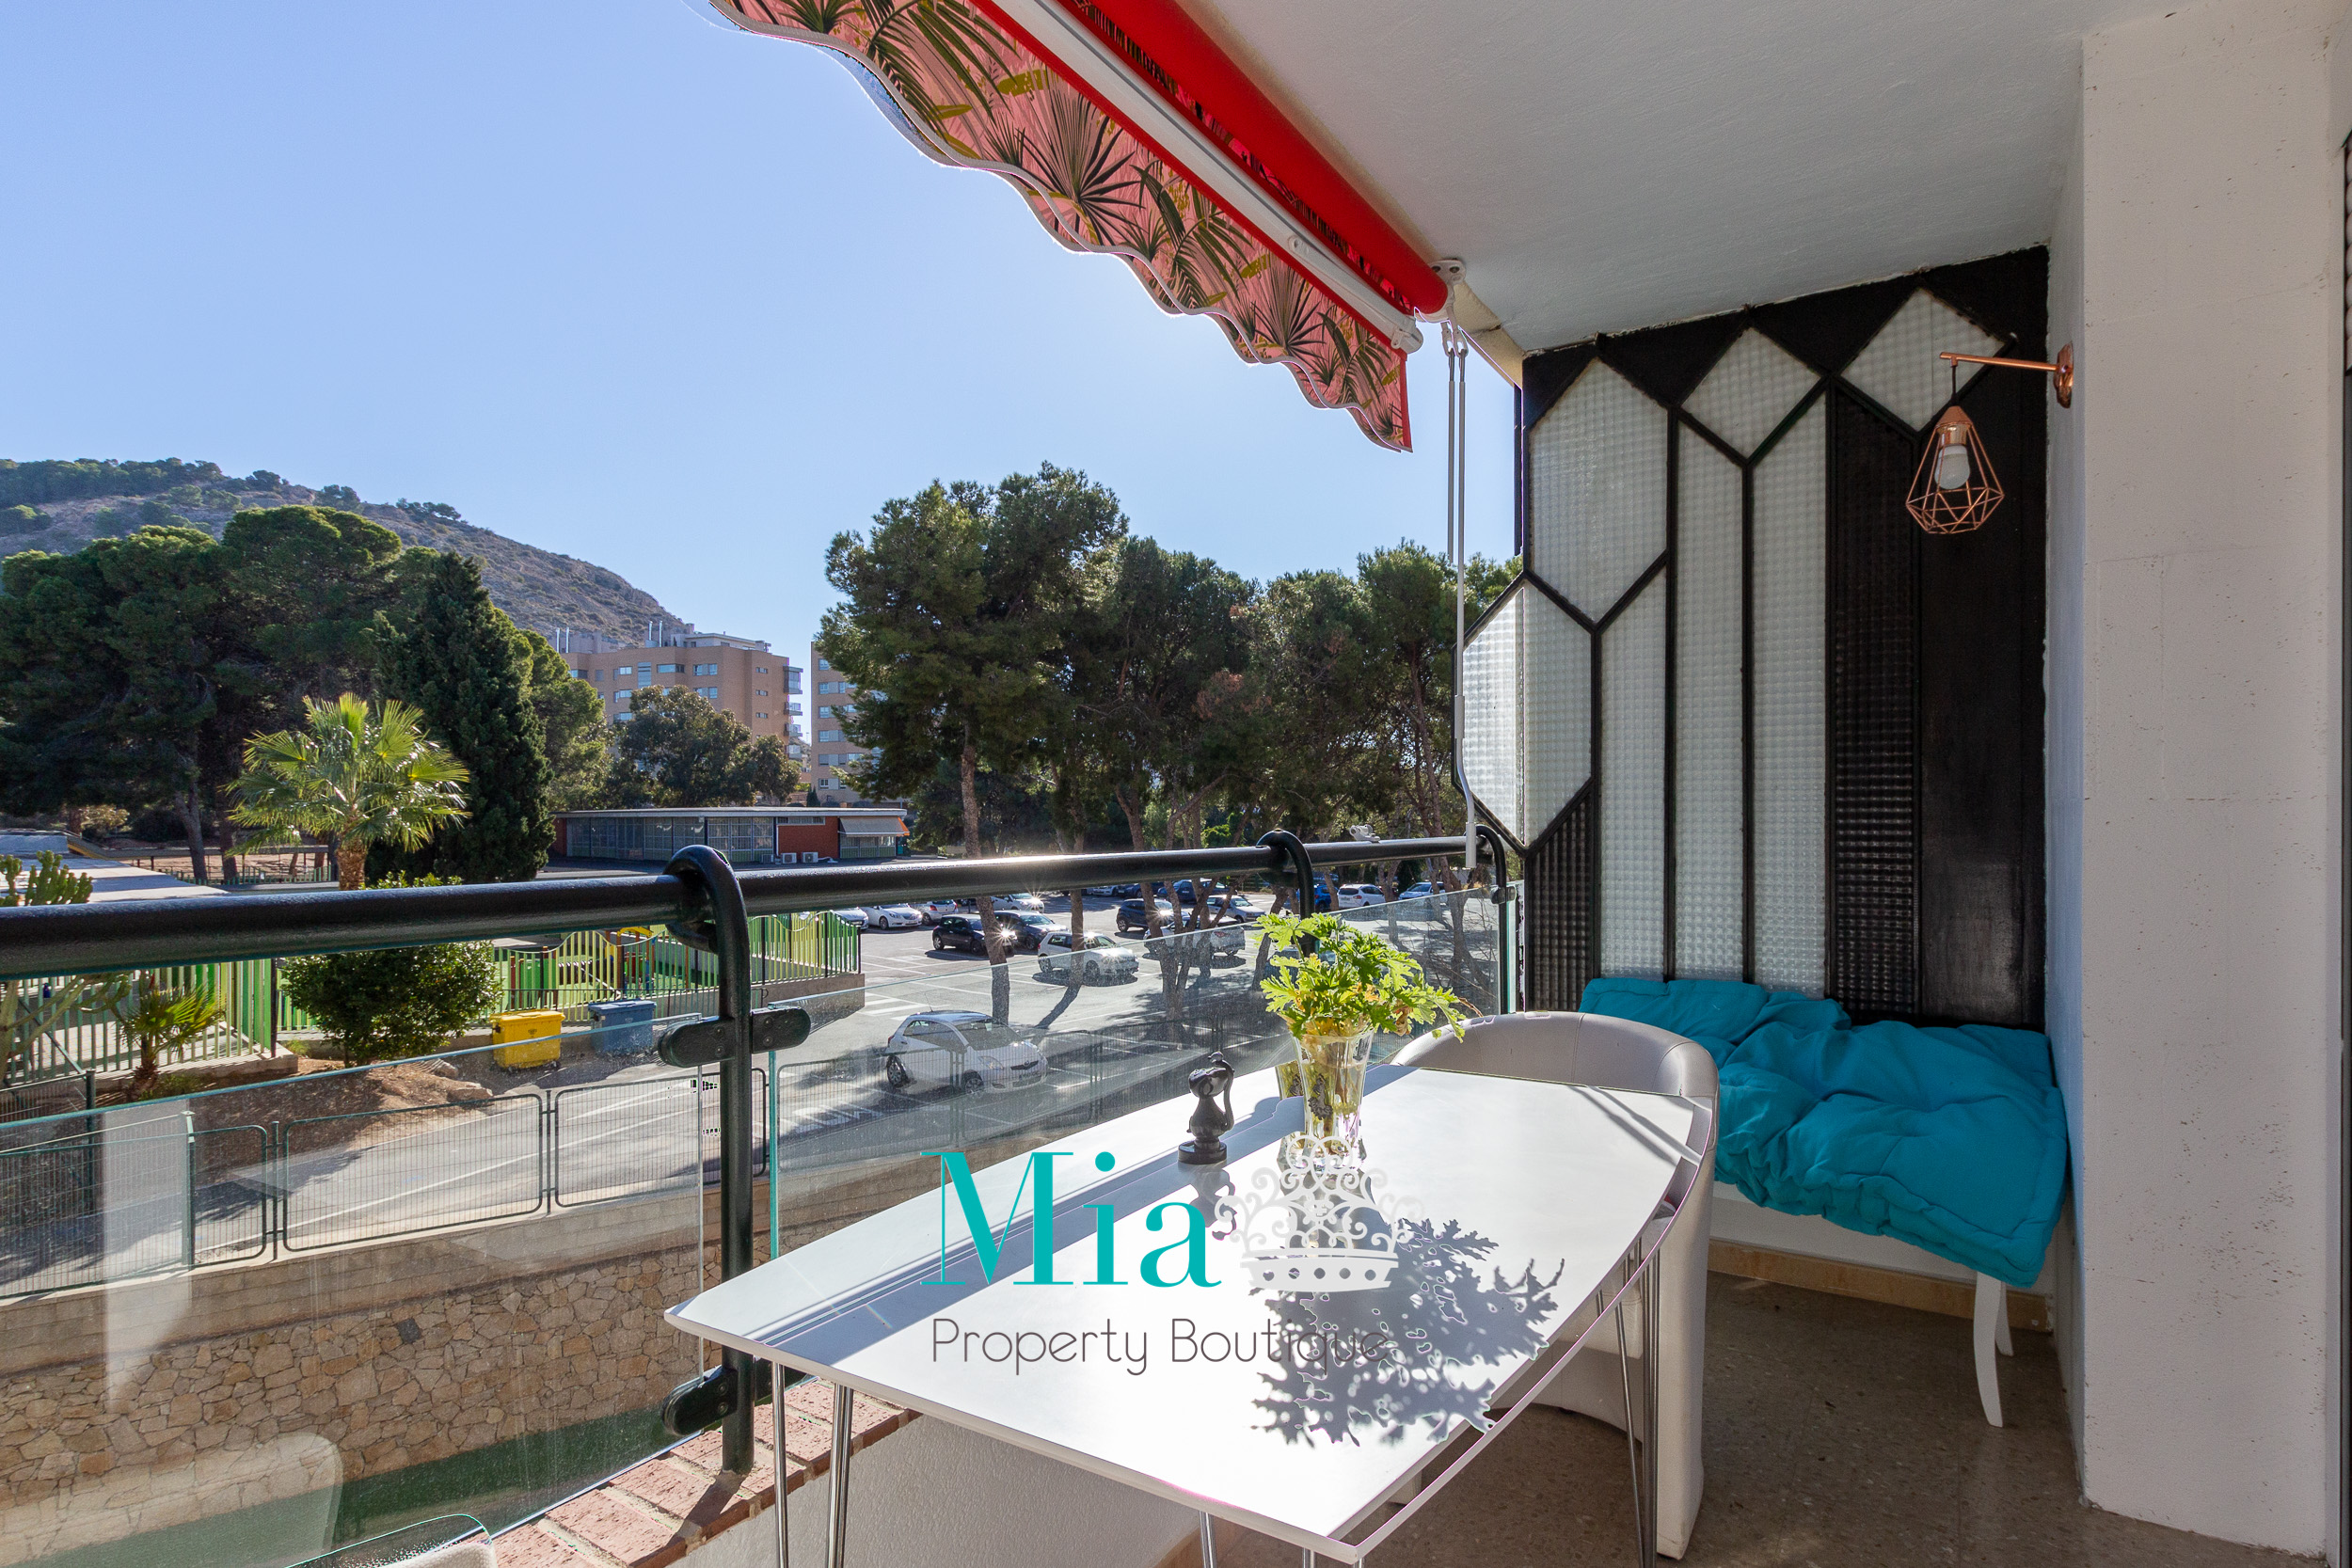 Apartment next to the best Spanish schools in Alicante